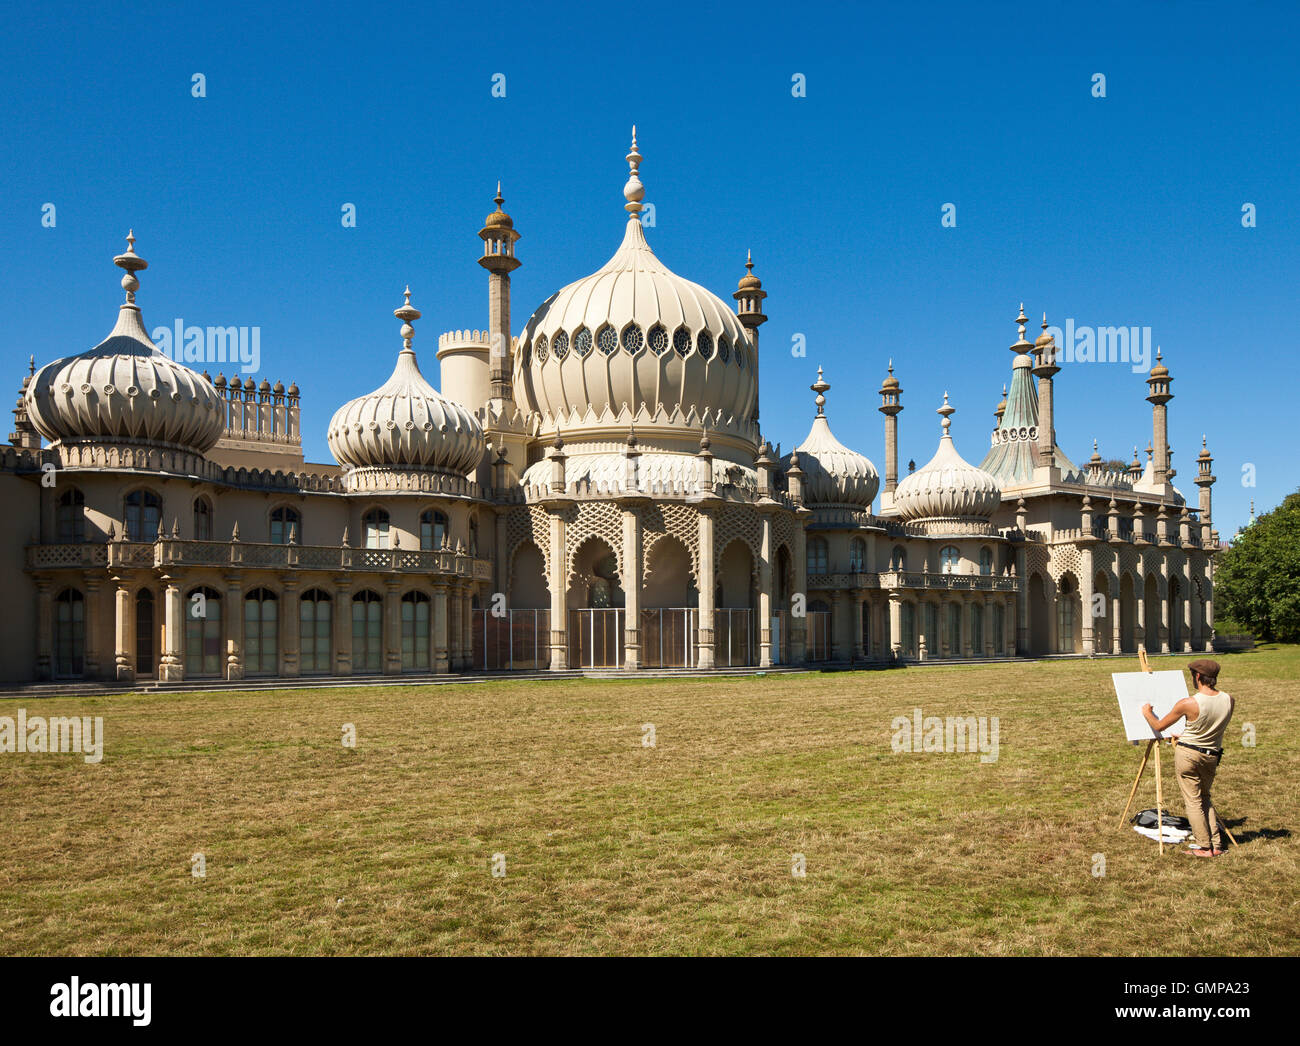 Brighton Pavilion and artist. - Stock Image